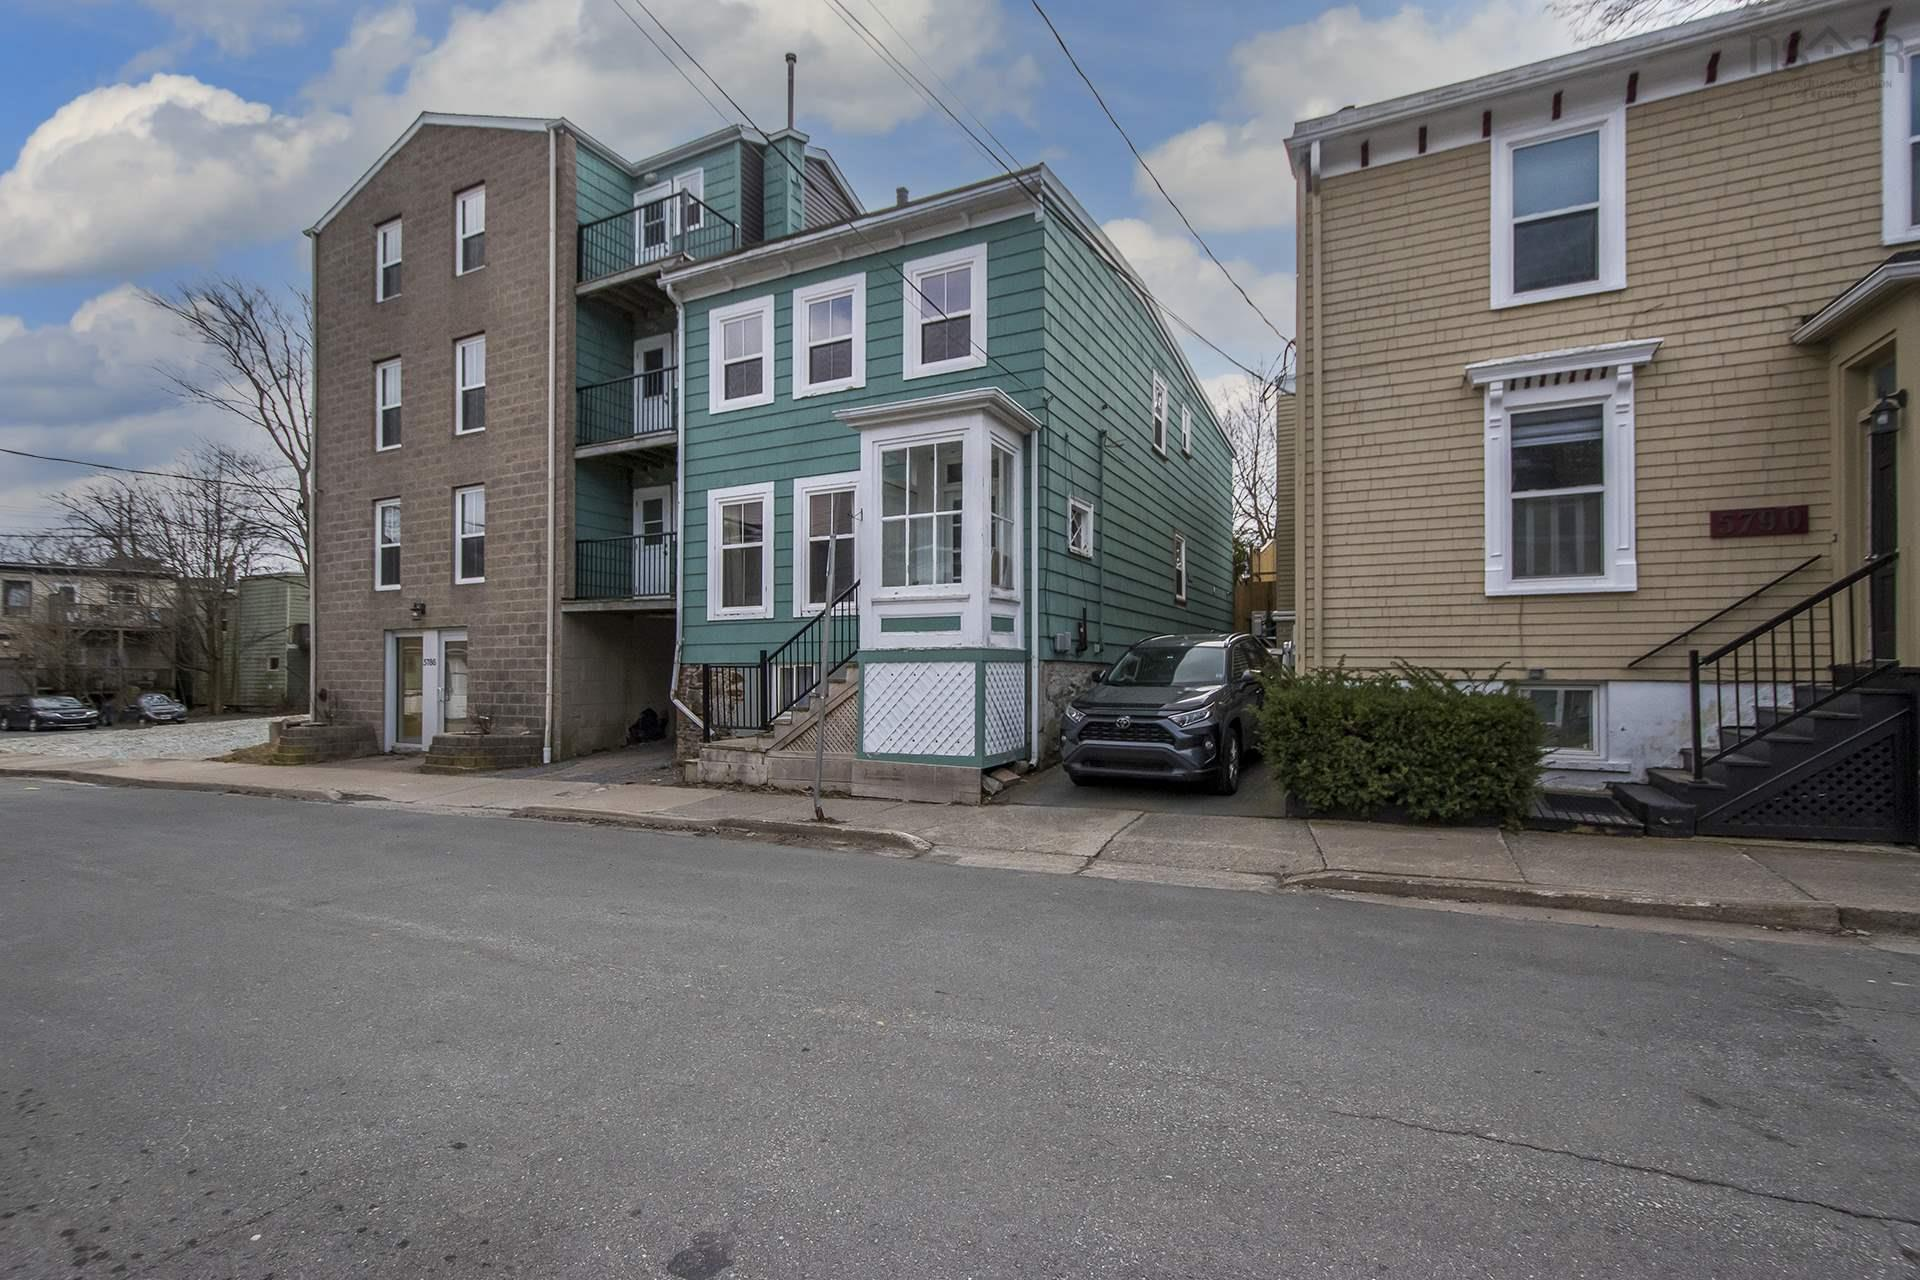 5784-5786 Tower Terrace, Halifax, NS B3H 1R5, ,For Sale,5784-5786 Tower Terrace,202108734